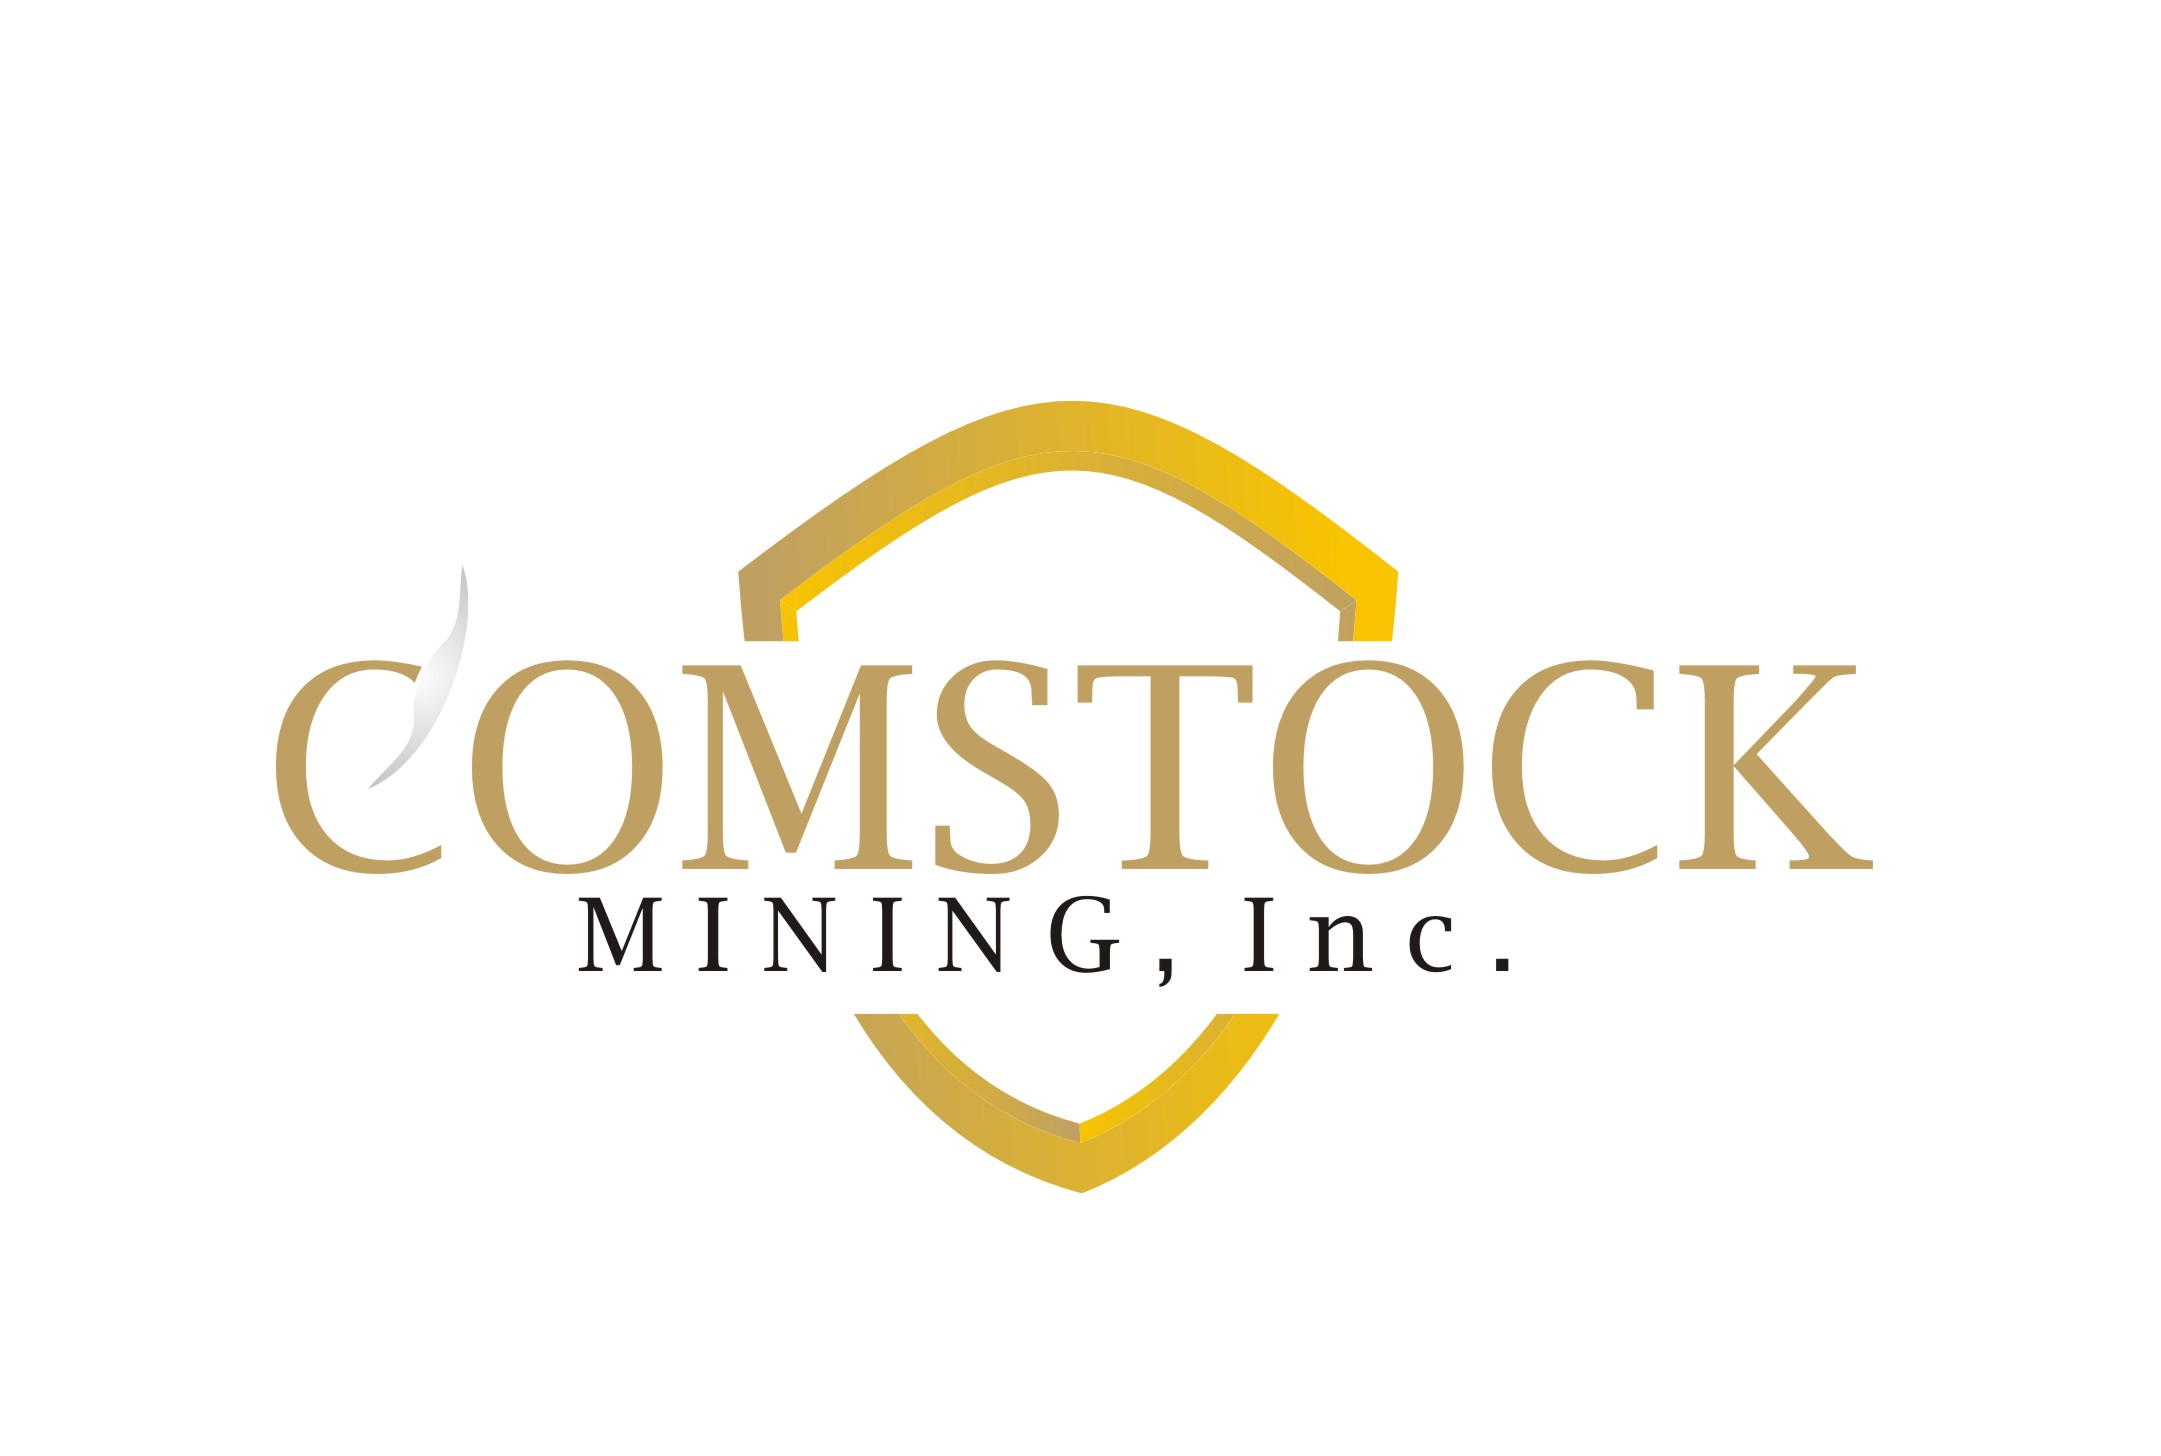 Logo Design by Yuda Hermawan - Entry No. 150 in the Logo Design Contest Captivating Logo Design for Comstock Mining, Inc..